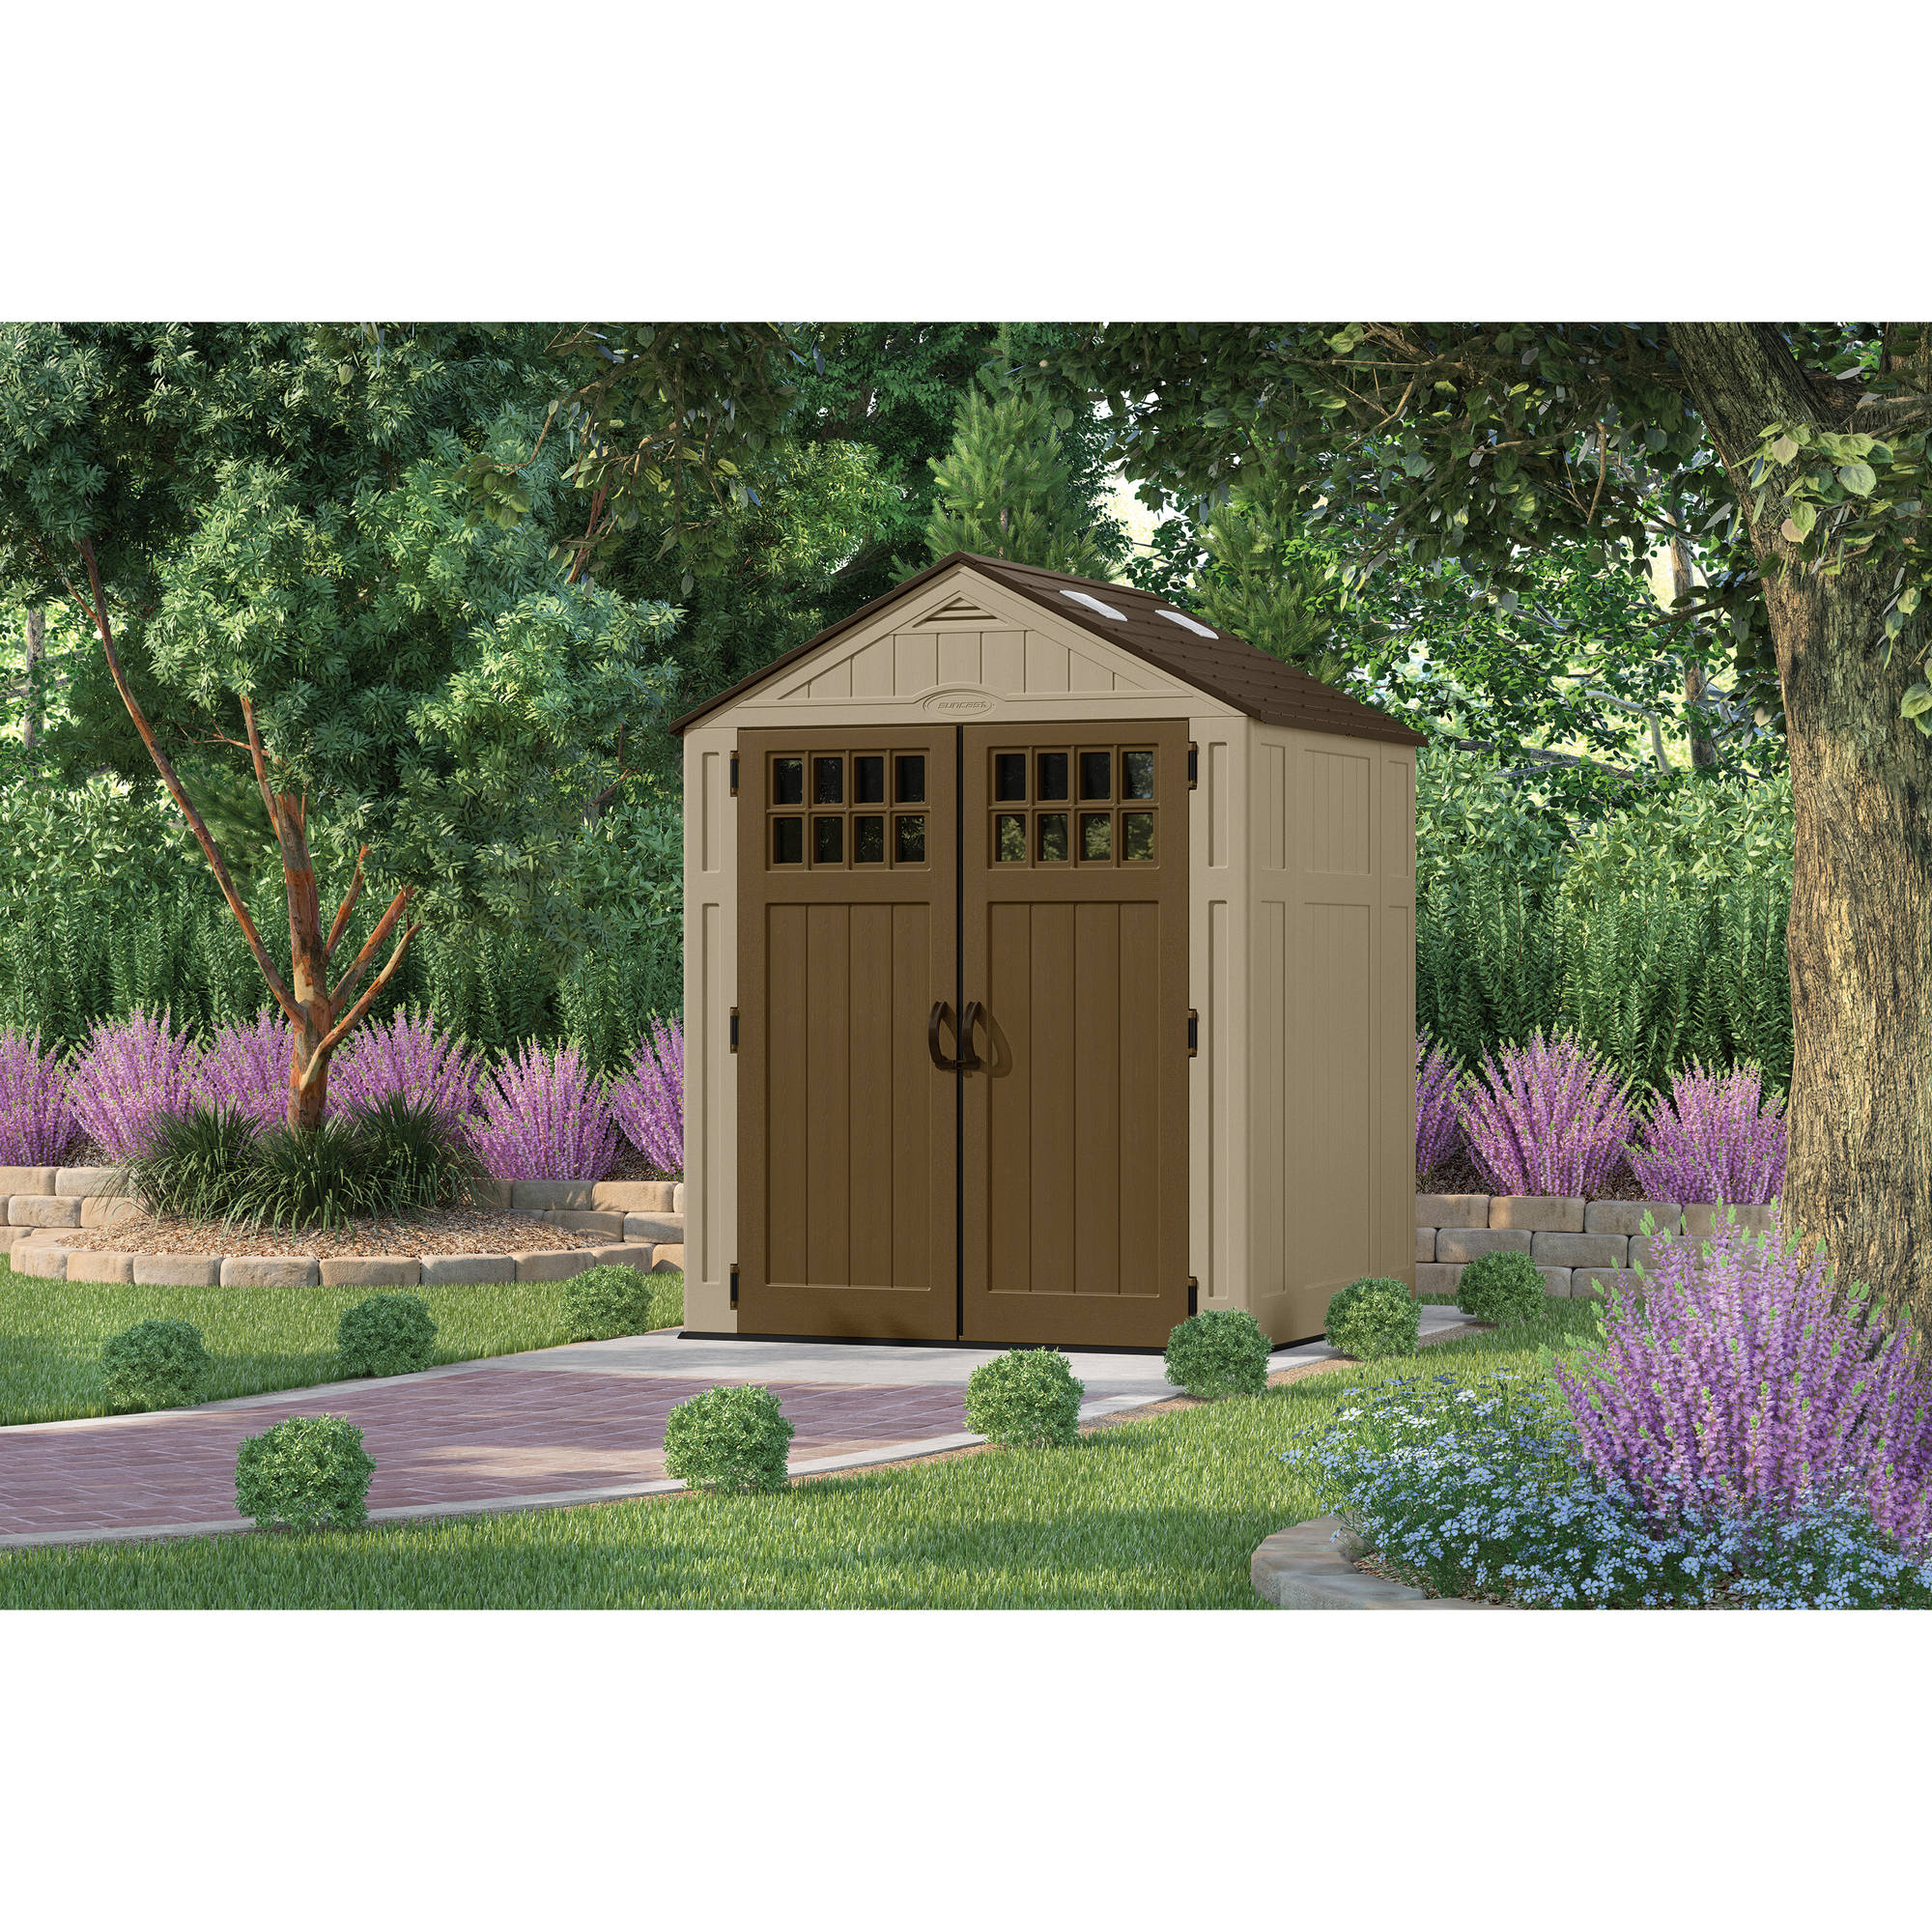 Keter 6 X 4 Shed X Apex Overlap Wooden Shed With Keter 6 X 4 Shed